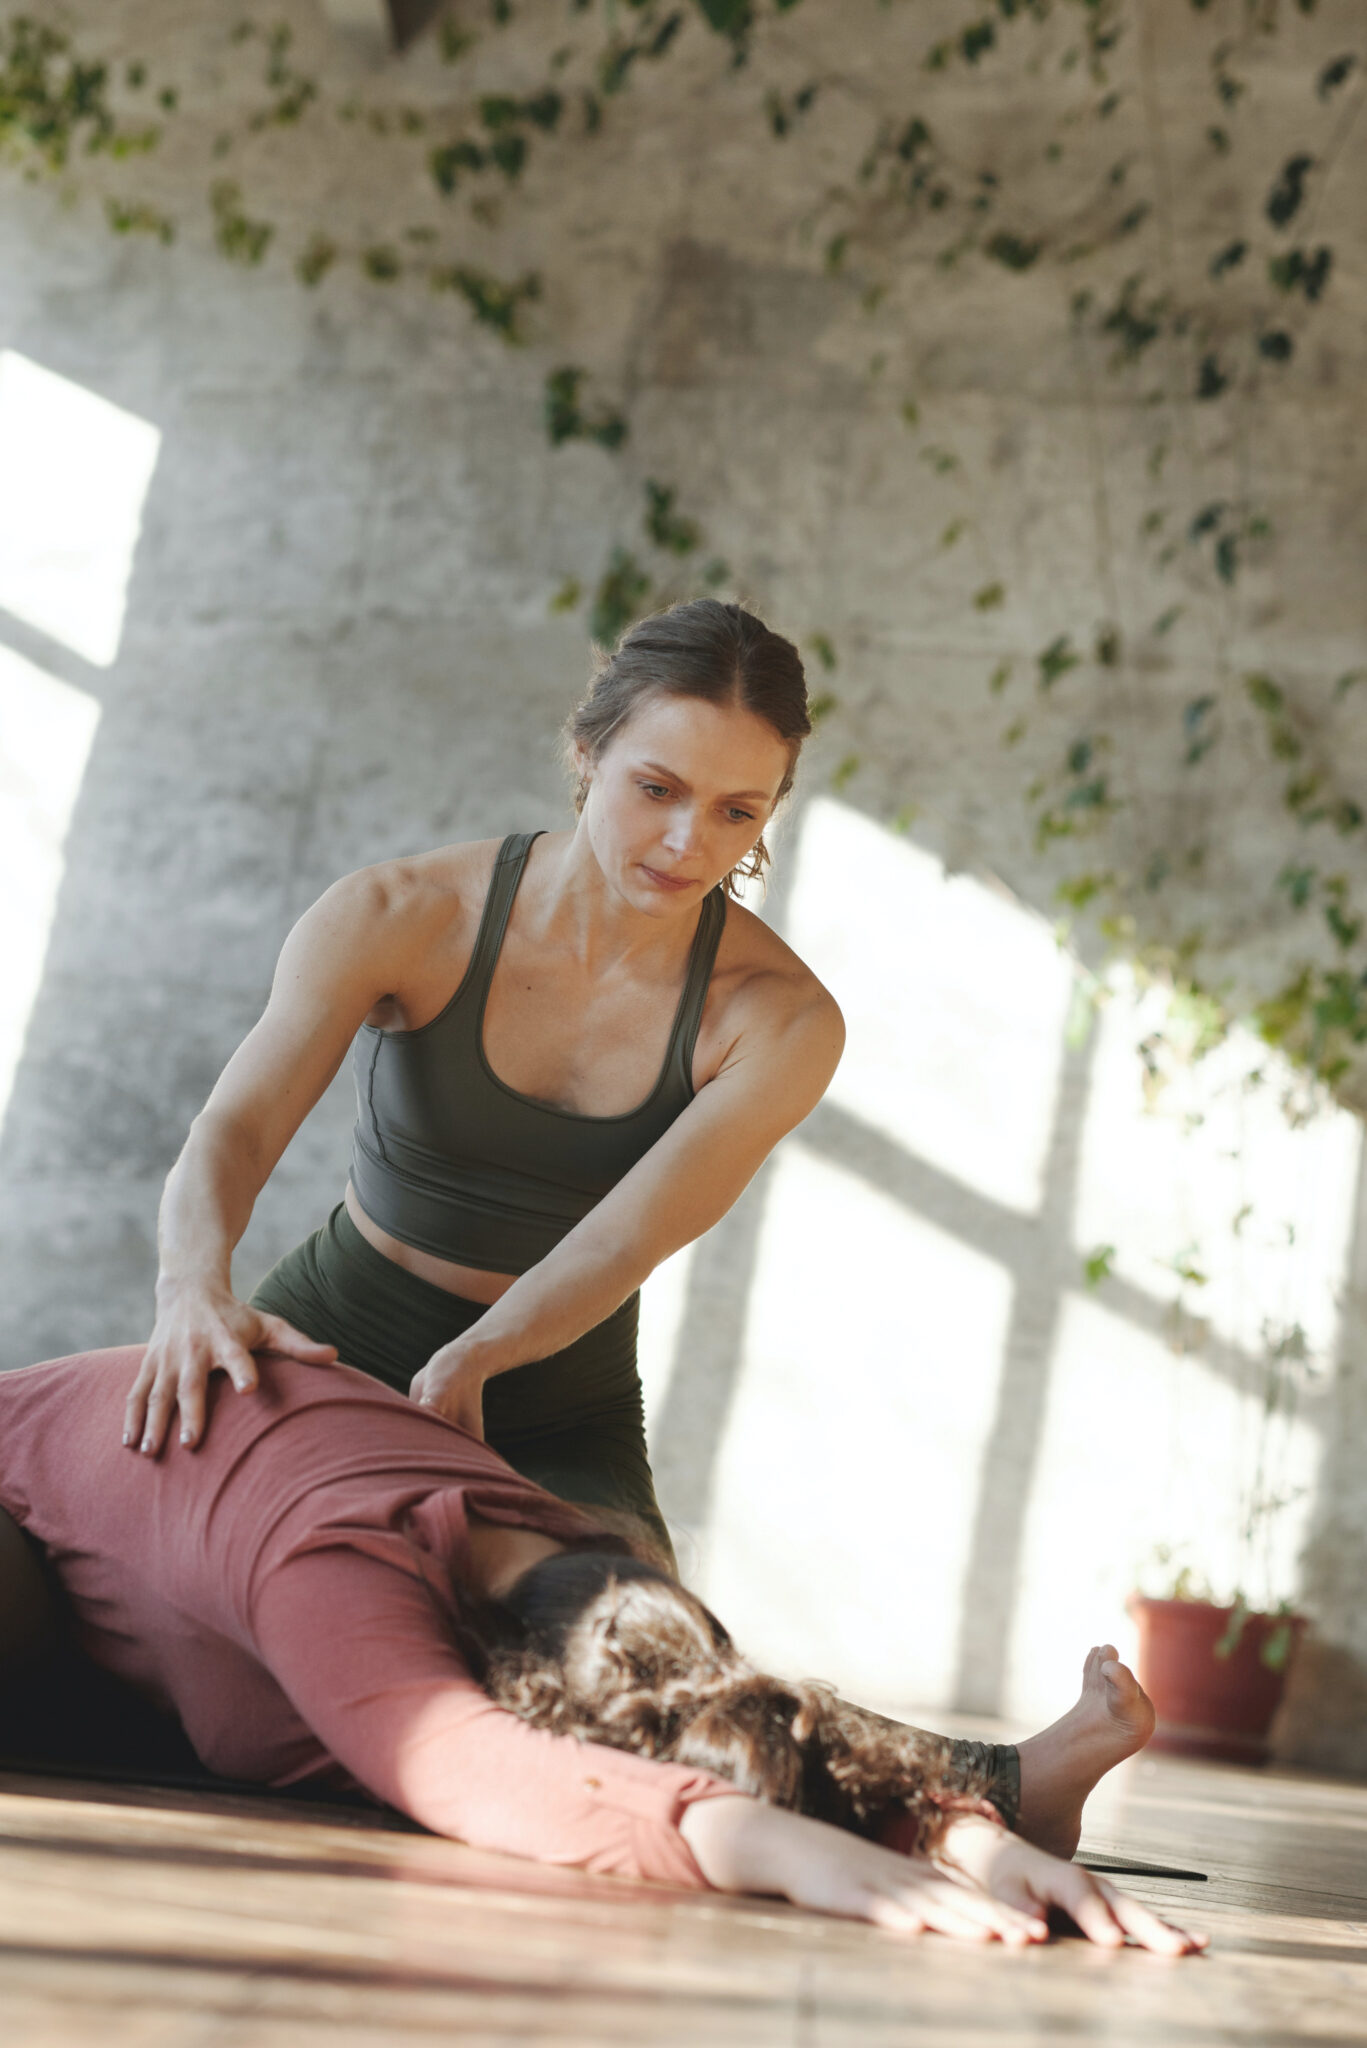 A personal trainer helps a woman stretch and work out for her wedding.